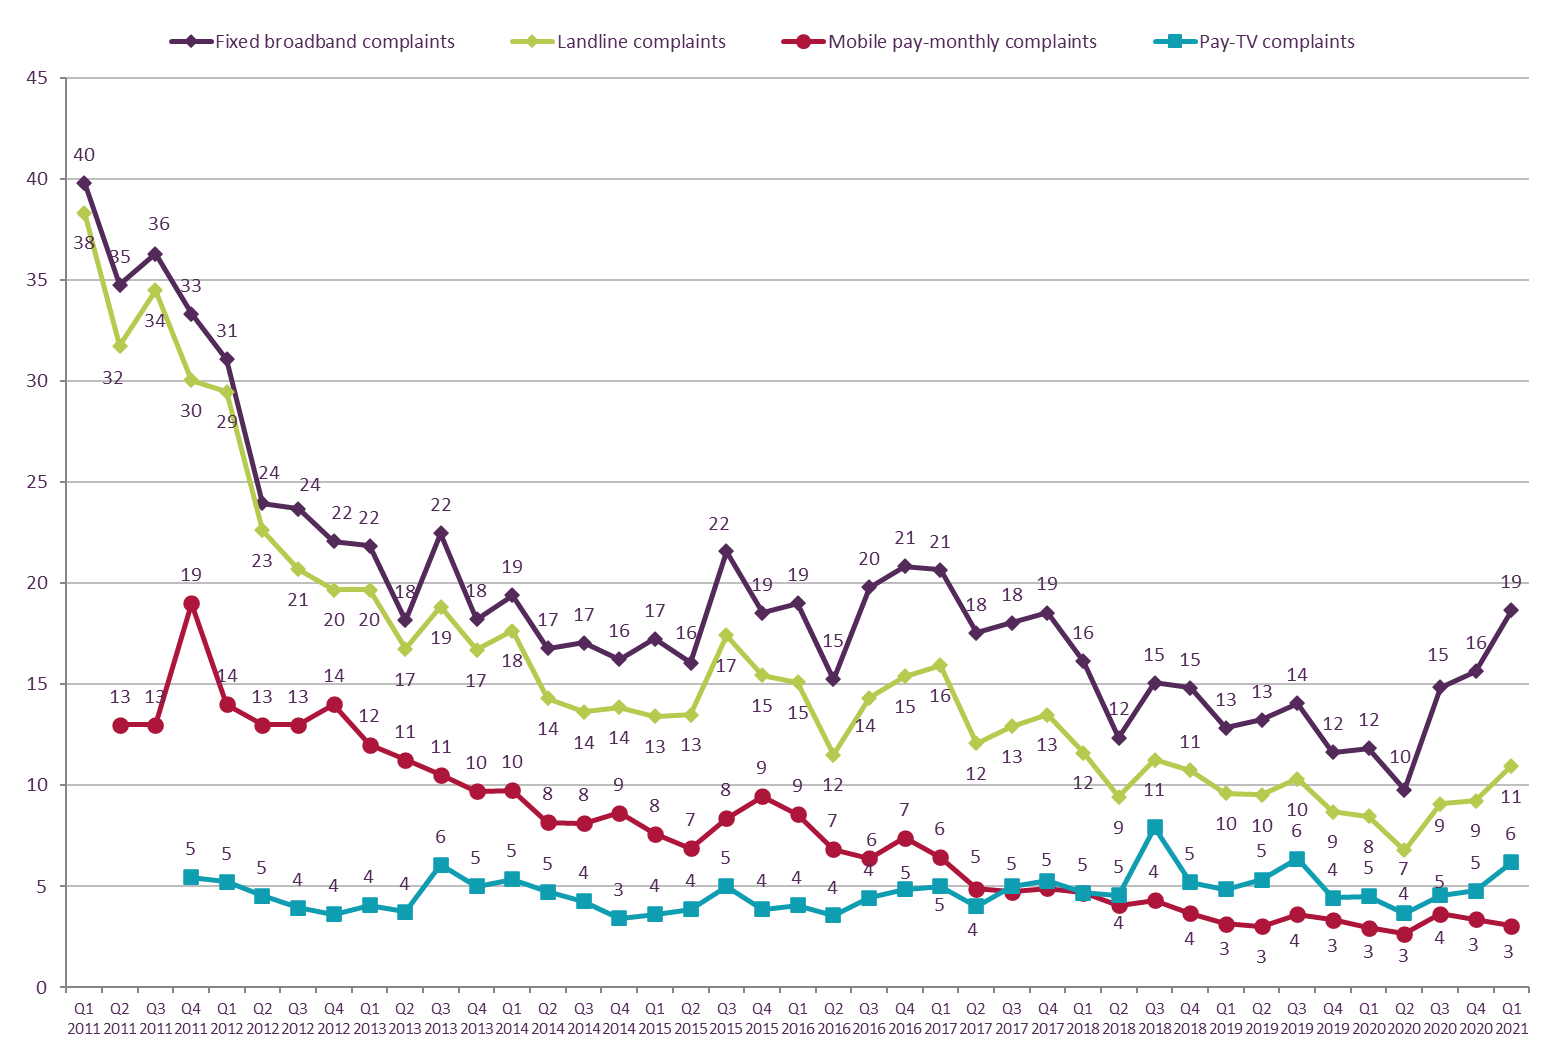 Graph showing trend data on residential consumer complaints received by Ofcom across landline, fixed broadband, pay-monthly mobile and pay TV services, by communications provider   It shows the relative volume of complaints per sector per 100,000 subscribers for the Q1 2011 – Q1 2021 period.   The relative volume of complaints per 100,000 subscribers for broadband increased by comparison with Q4 2021 from 16 to 19.   The relative volume of complaints for landline increased from 9 to 11.   The relative volume of complaints for pay TV increased from 5 to 6.    The relative volume of complaints for mobile remained broadly the same at 3.